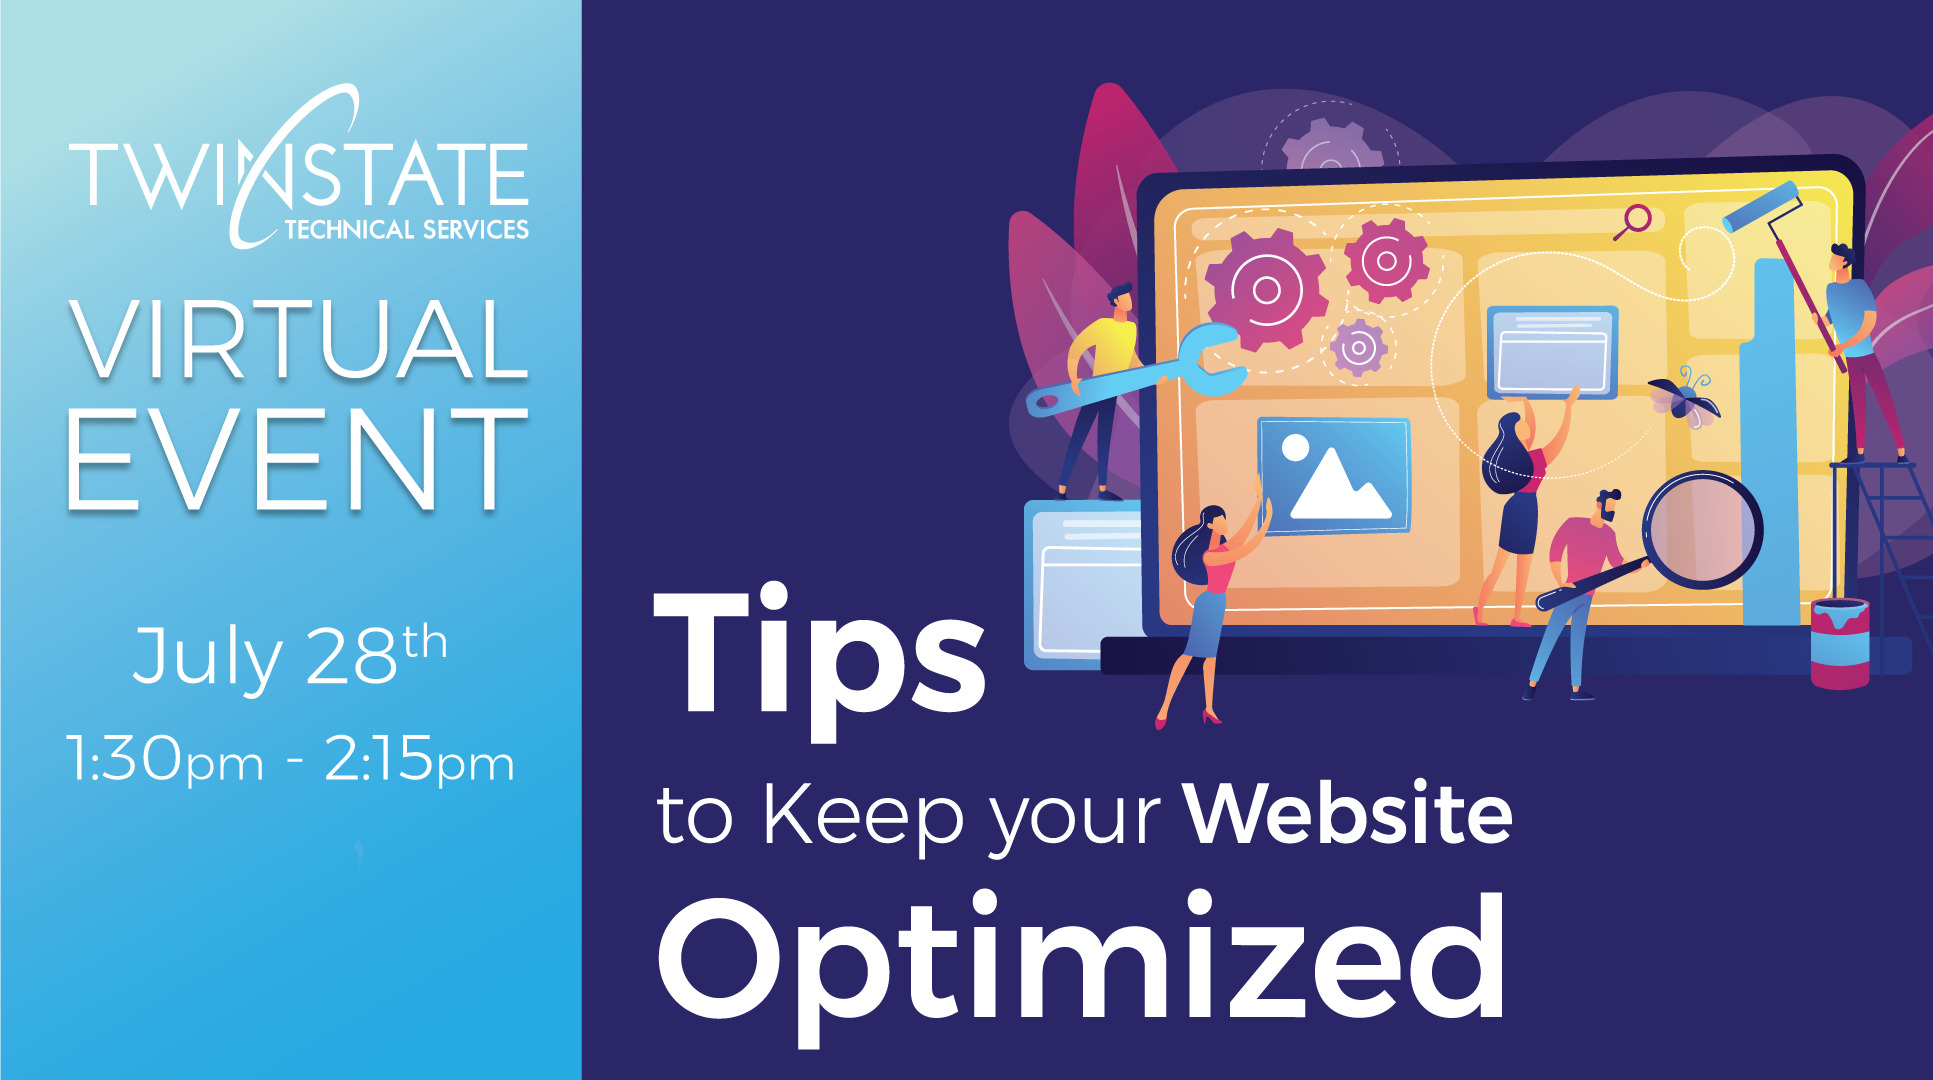 Event Page Banner: Tips to Keep Your Website Optimized